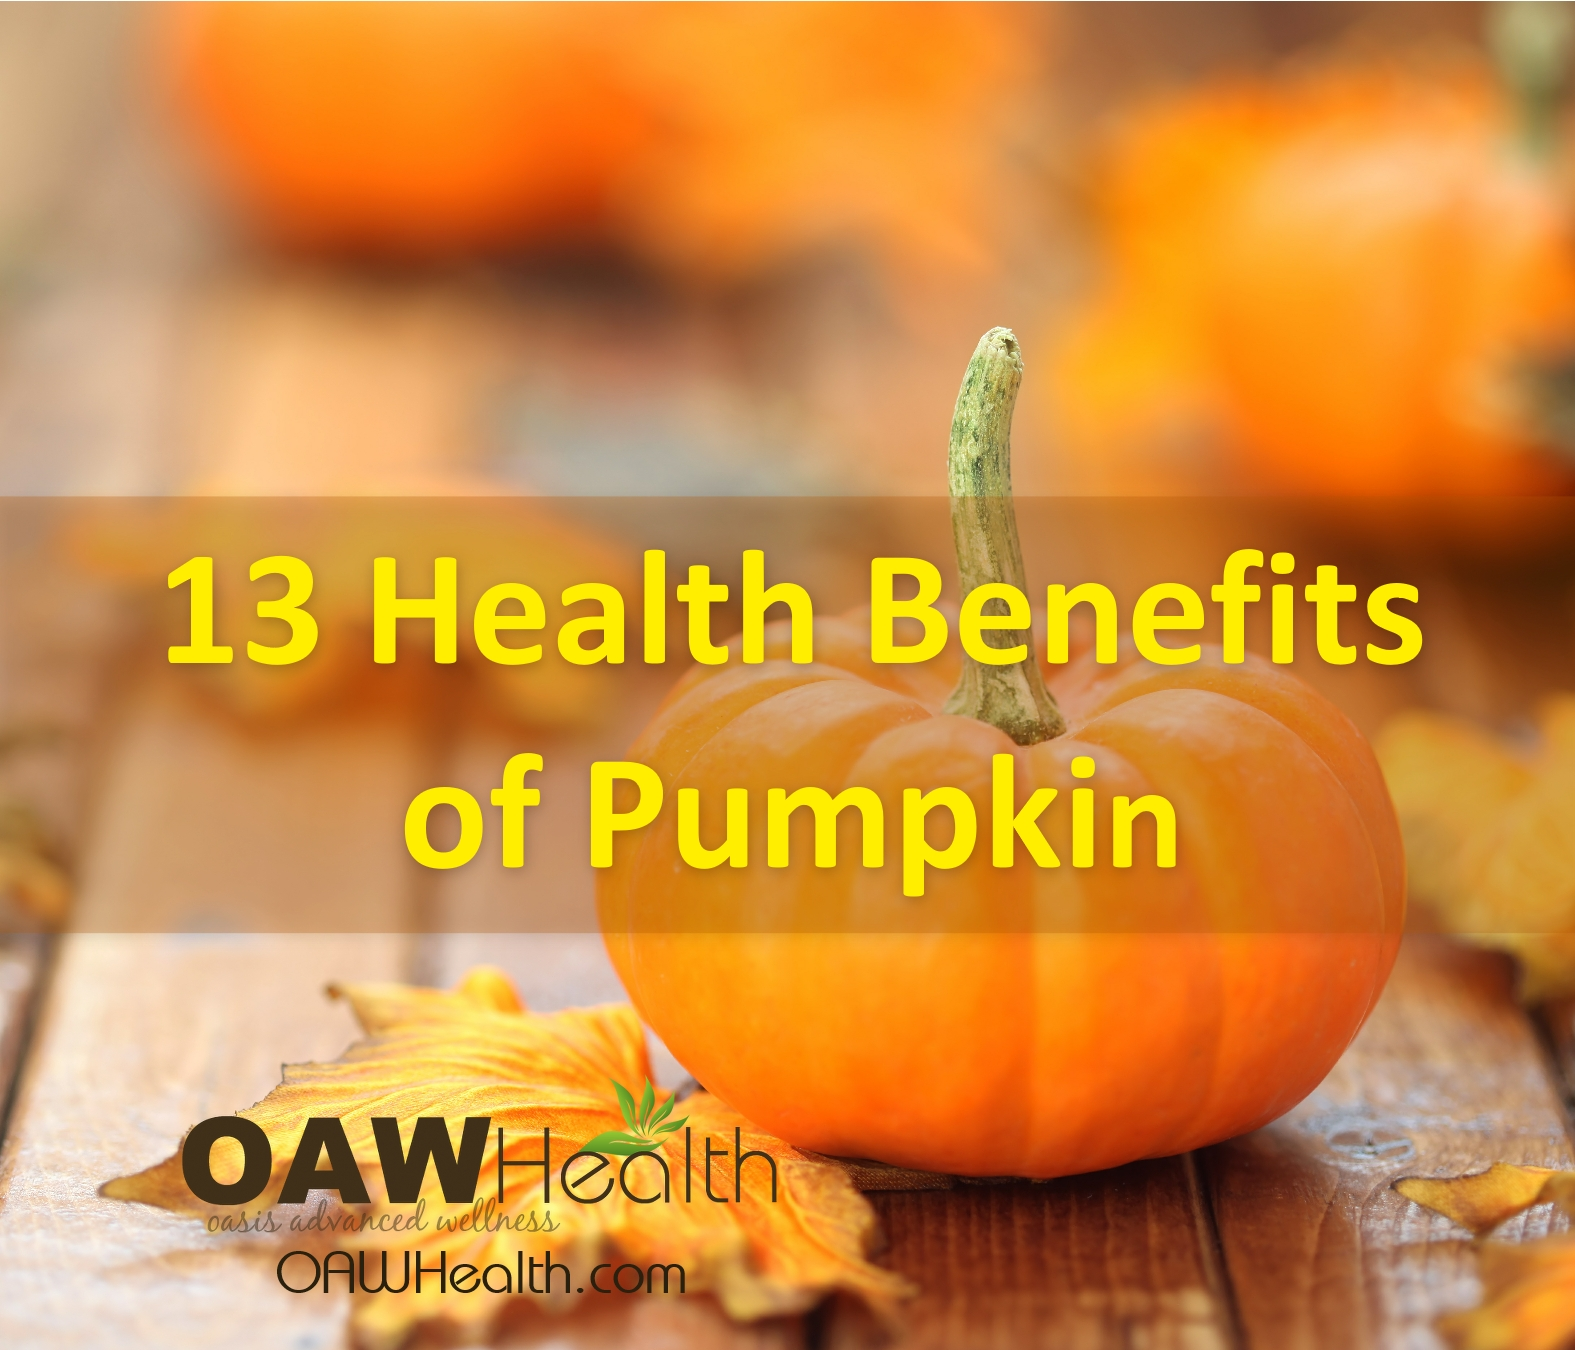 13 Amazing Health Benefits of Pumpkin